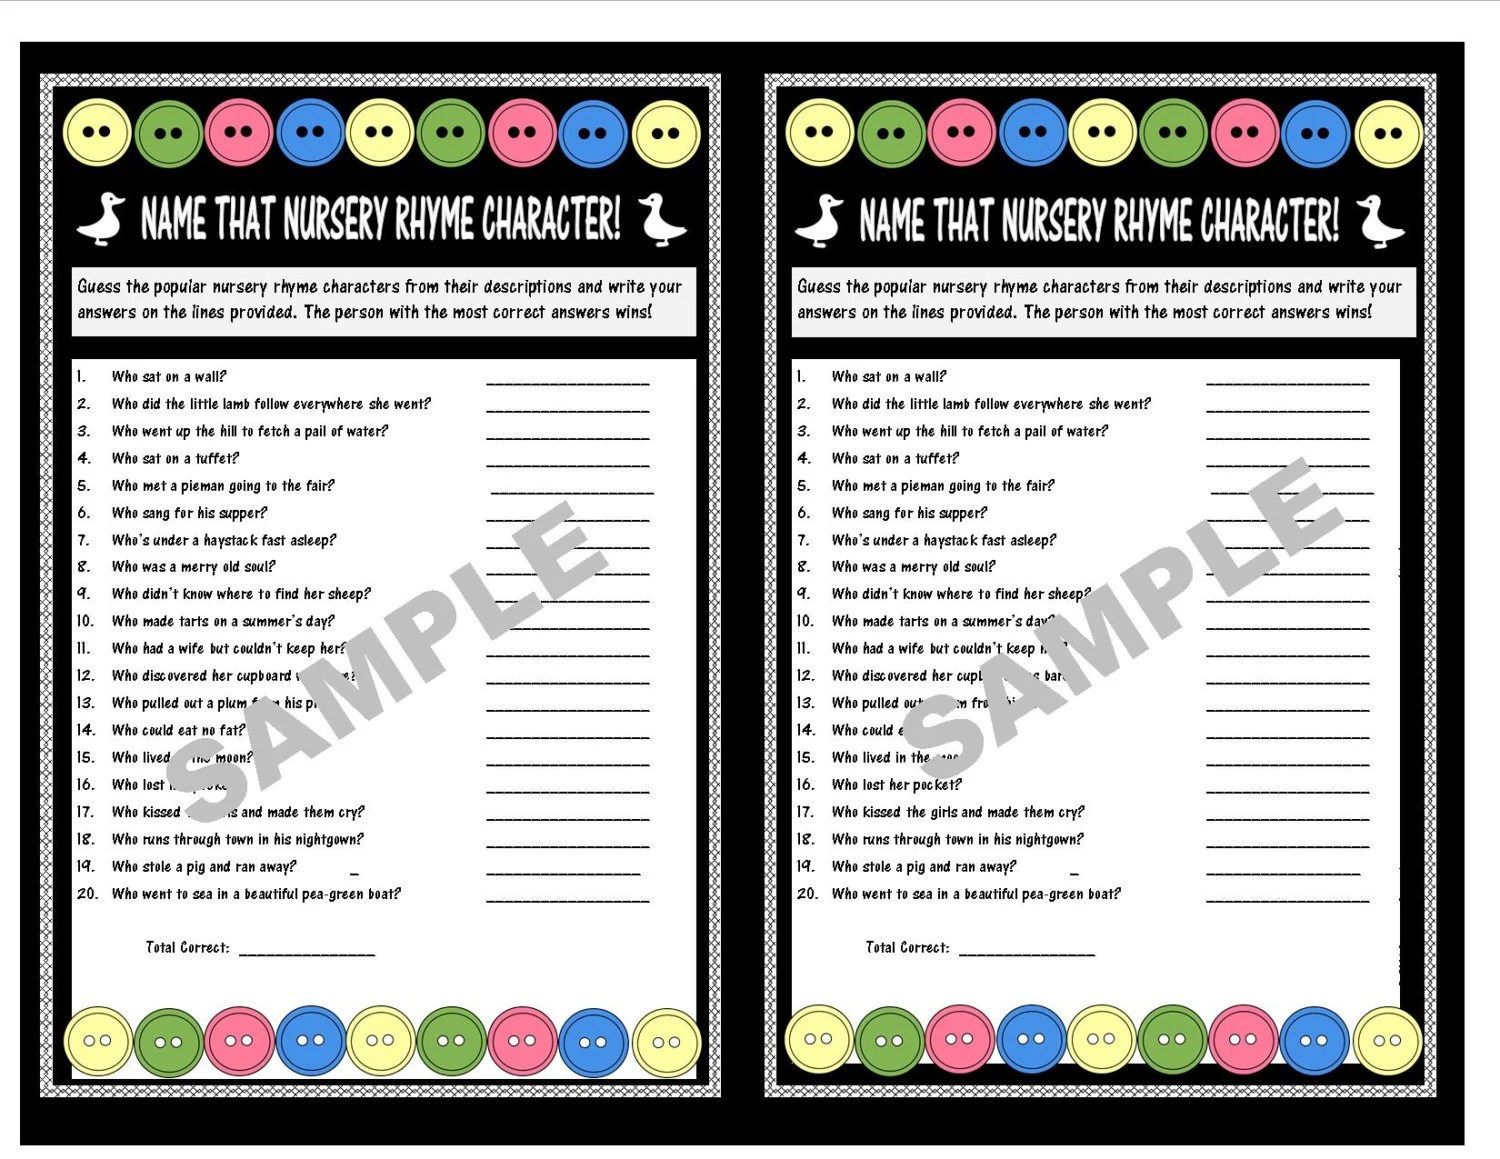 Name That Nursery Rhyme Character Baby Shower Printable Game Etsy